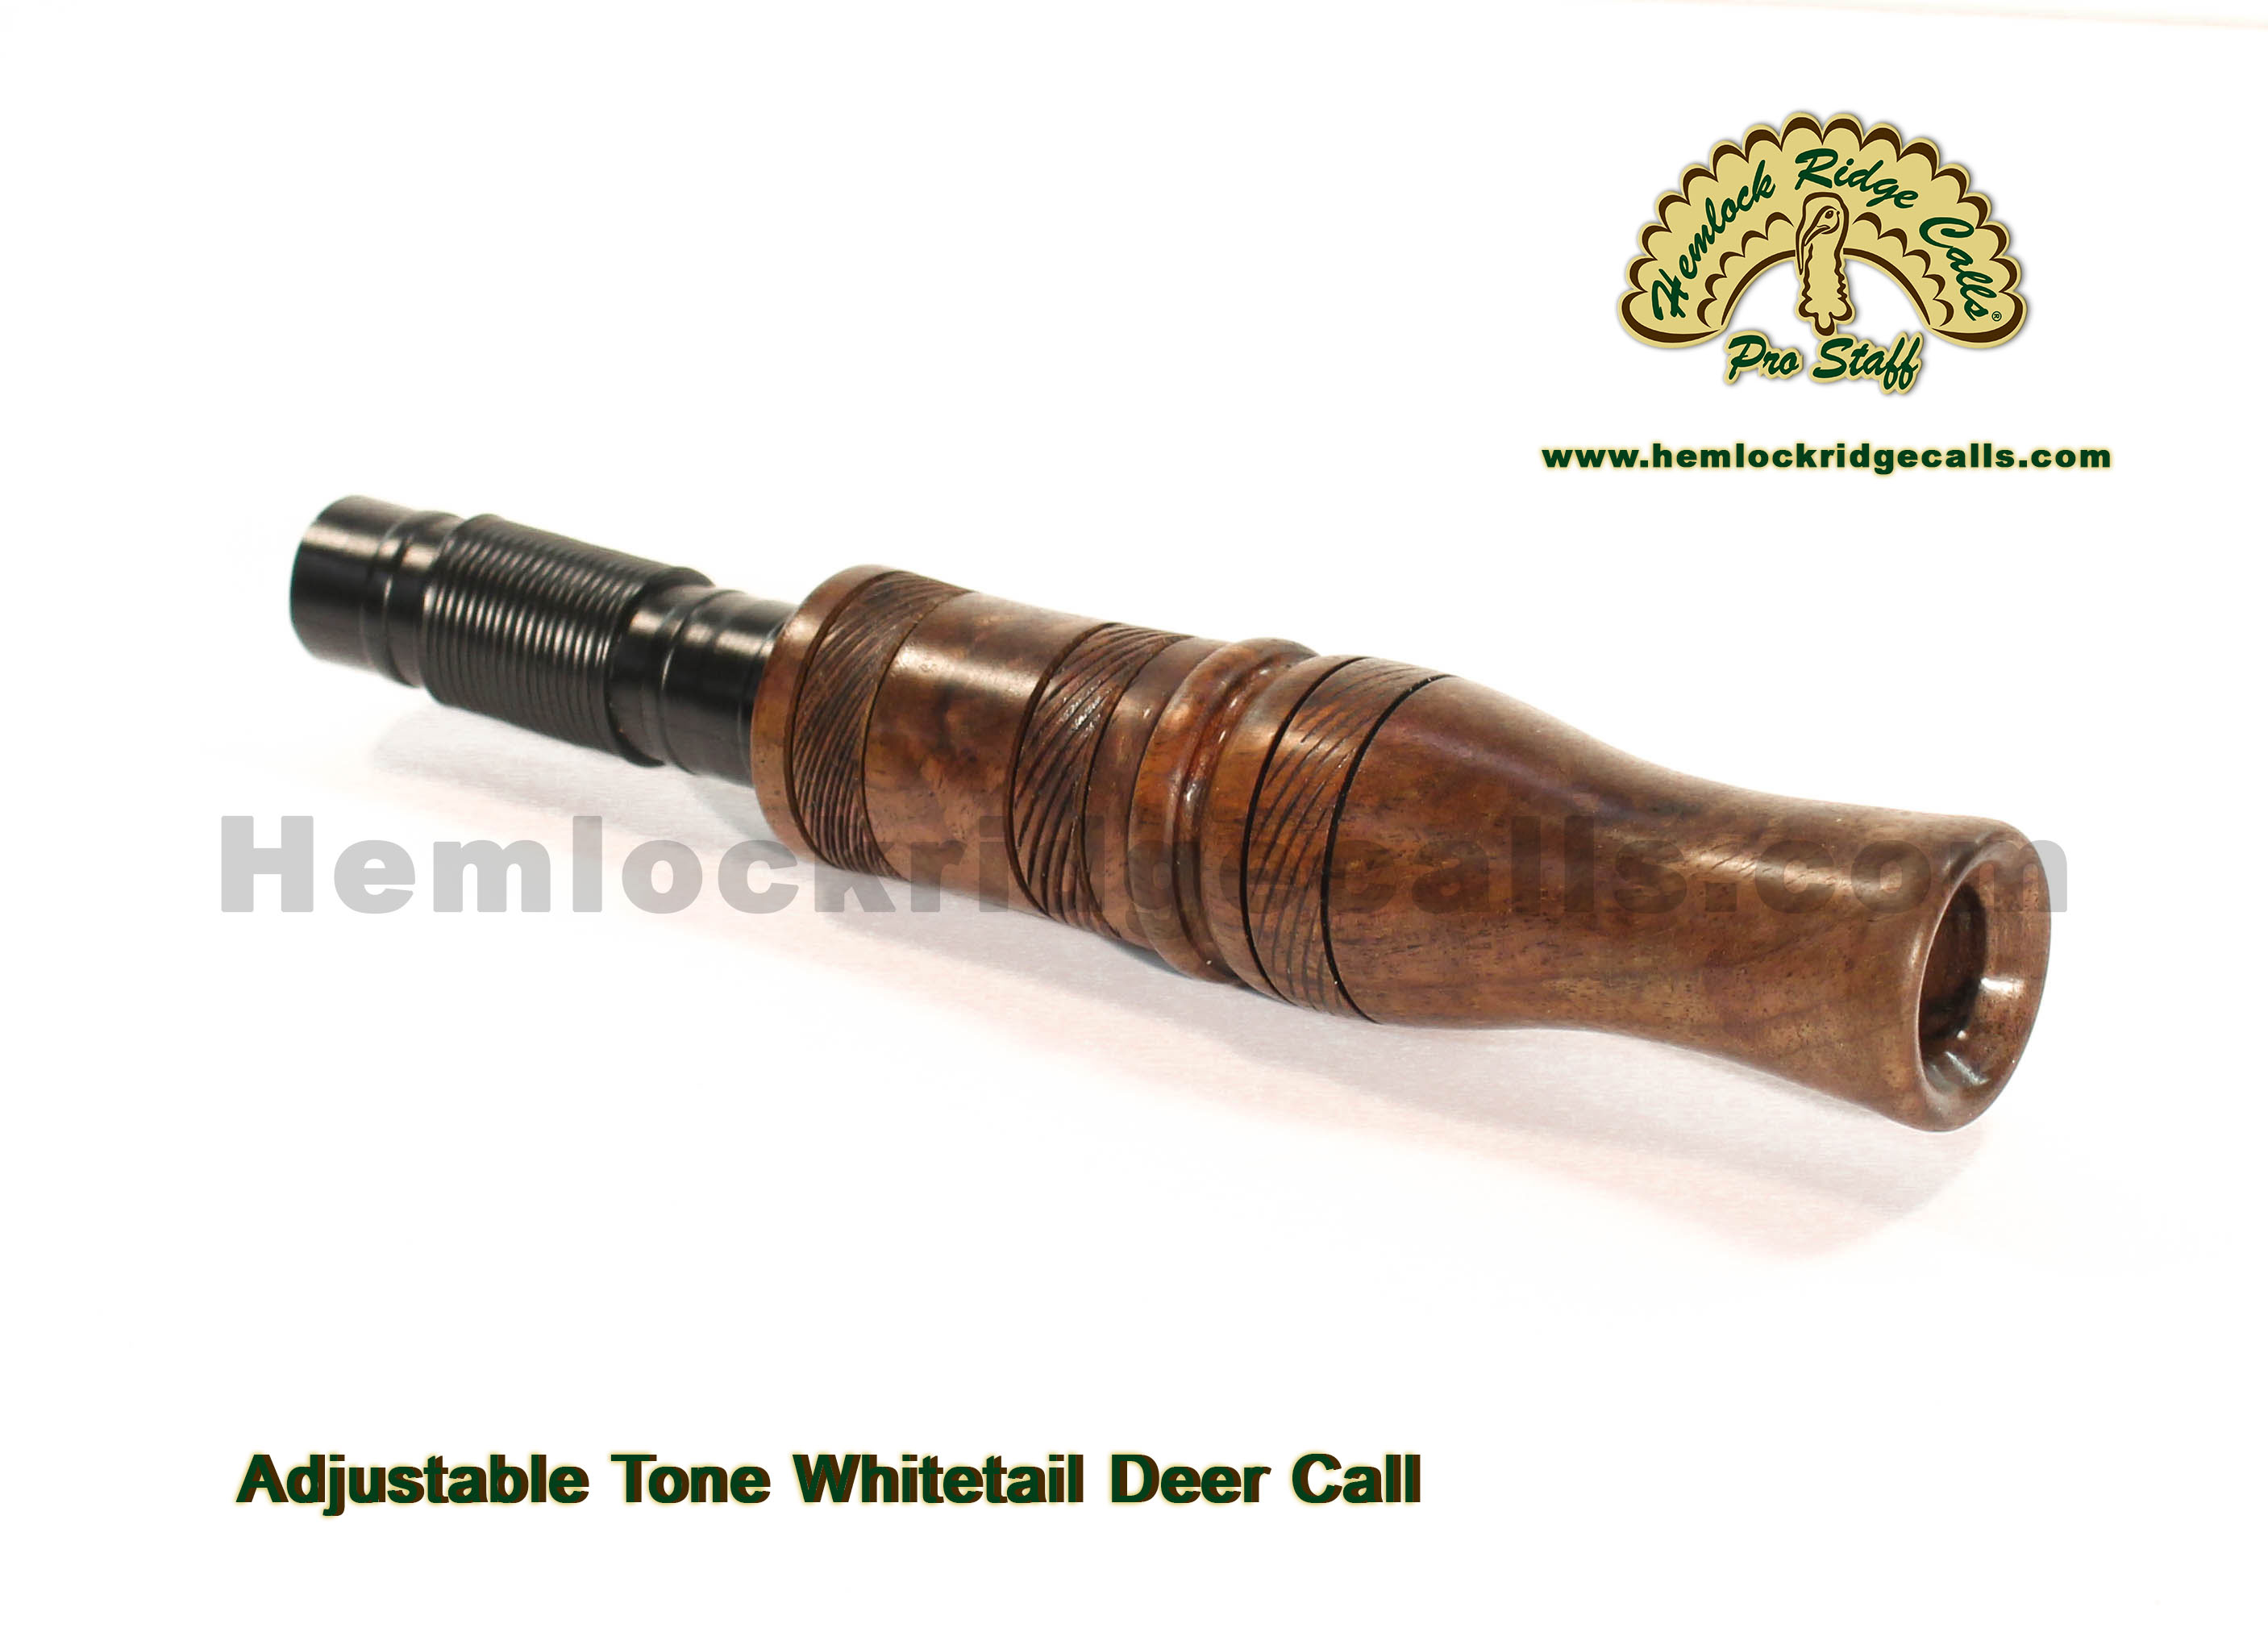 Adjustable Tone Deer Call